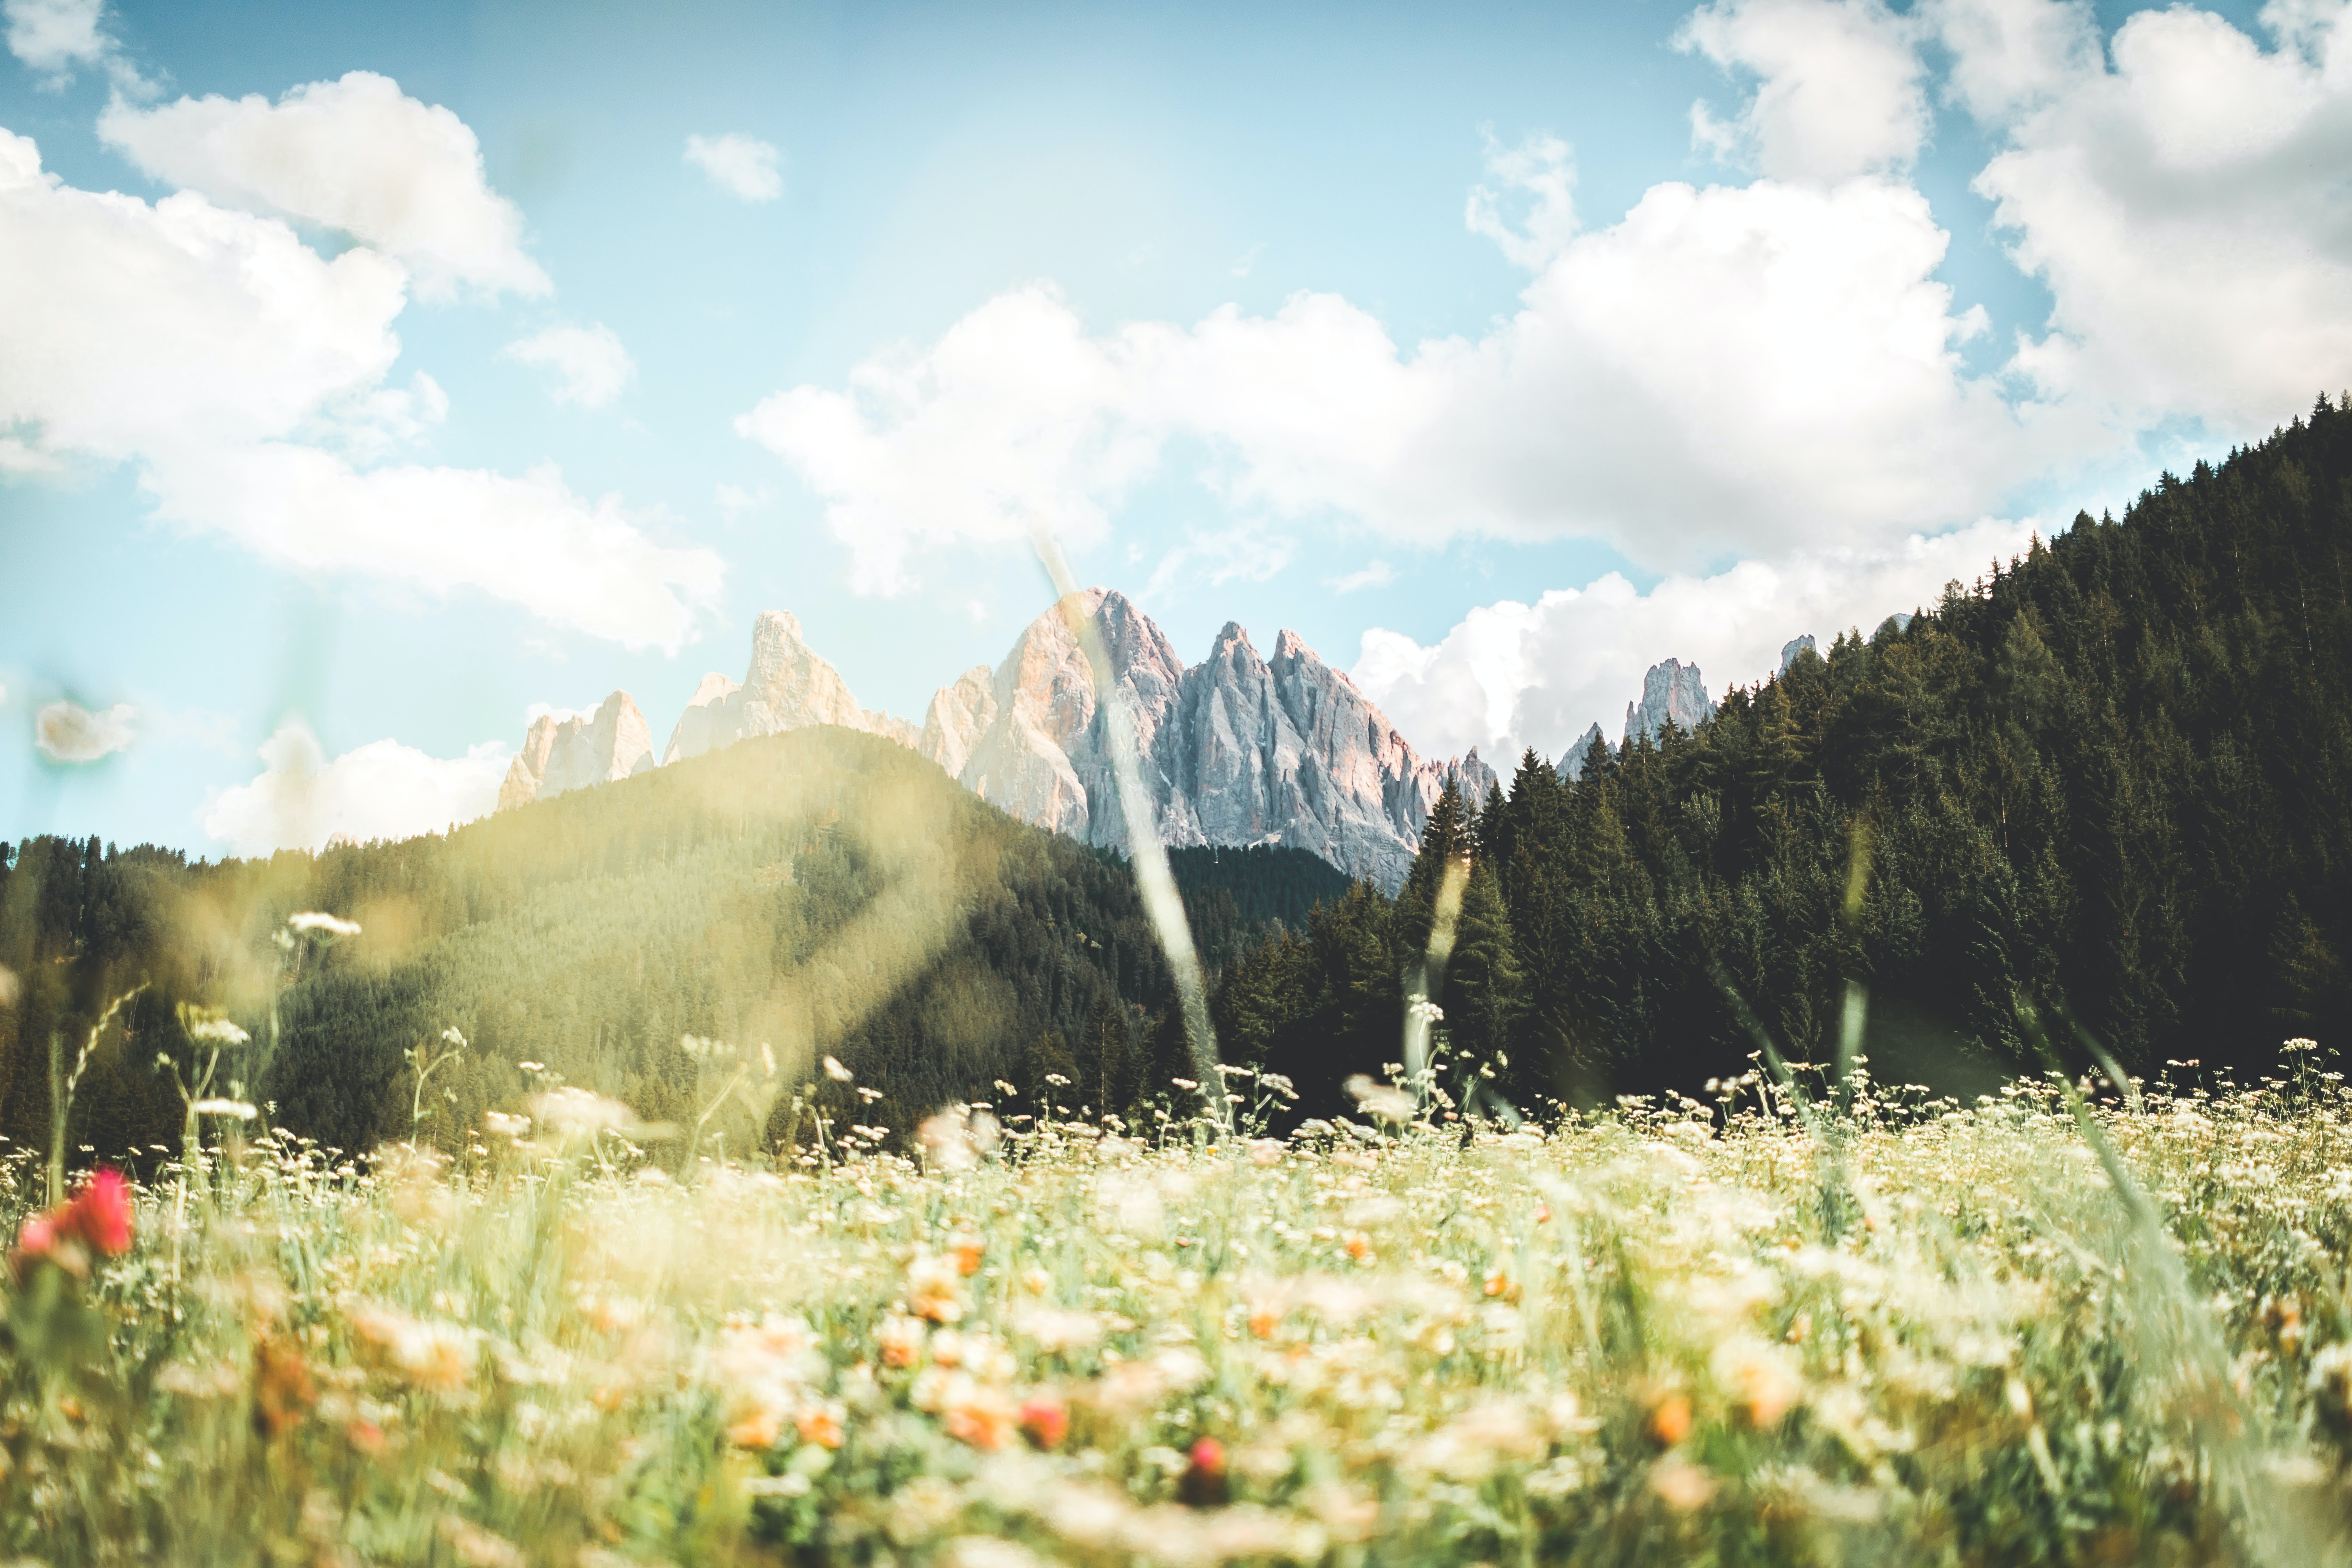 Photo of meadow with mountains in background.